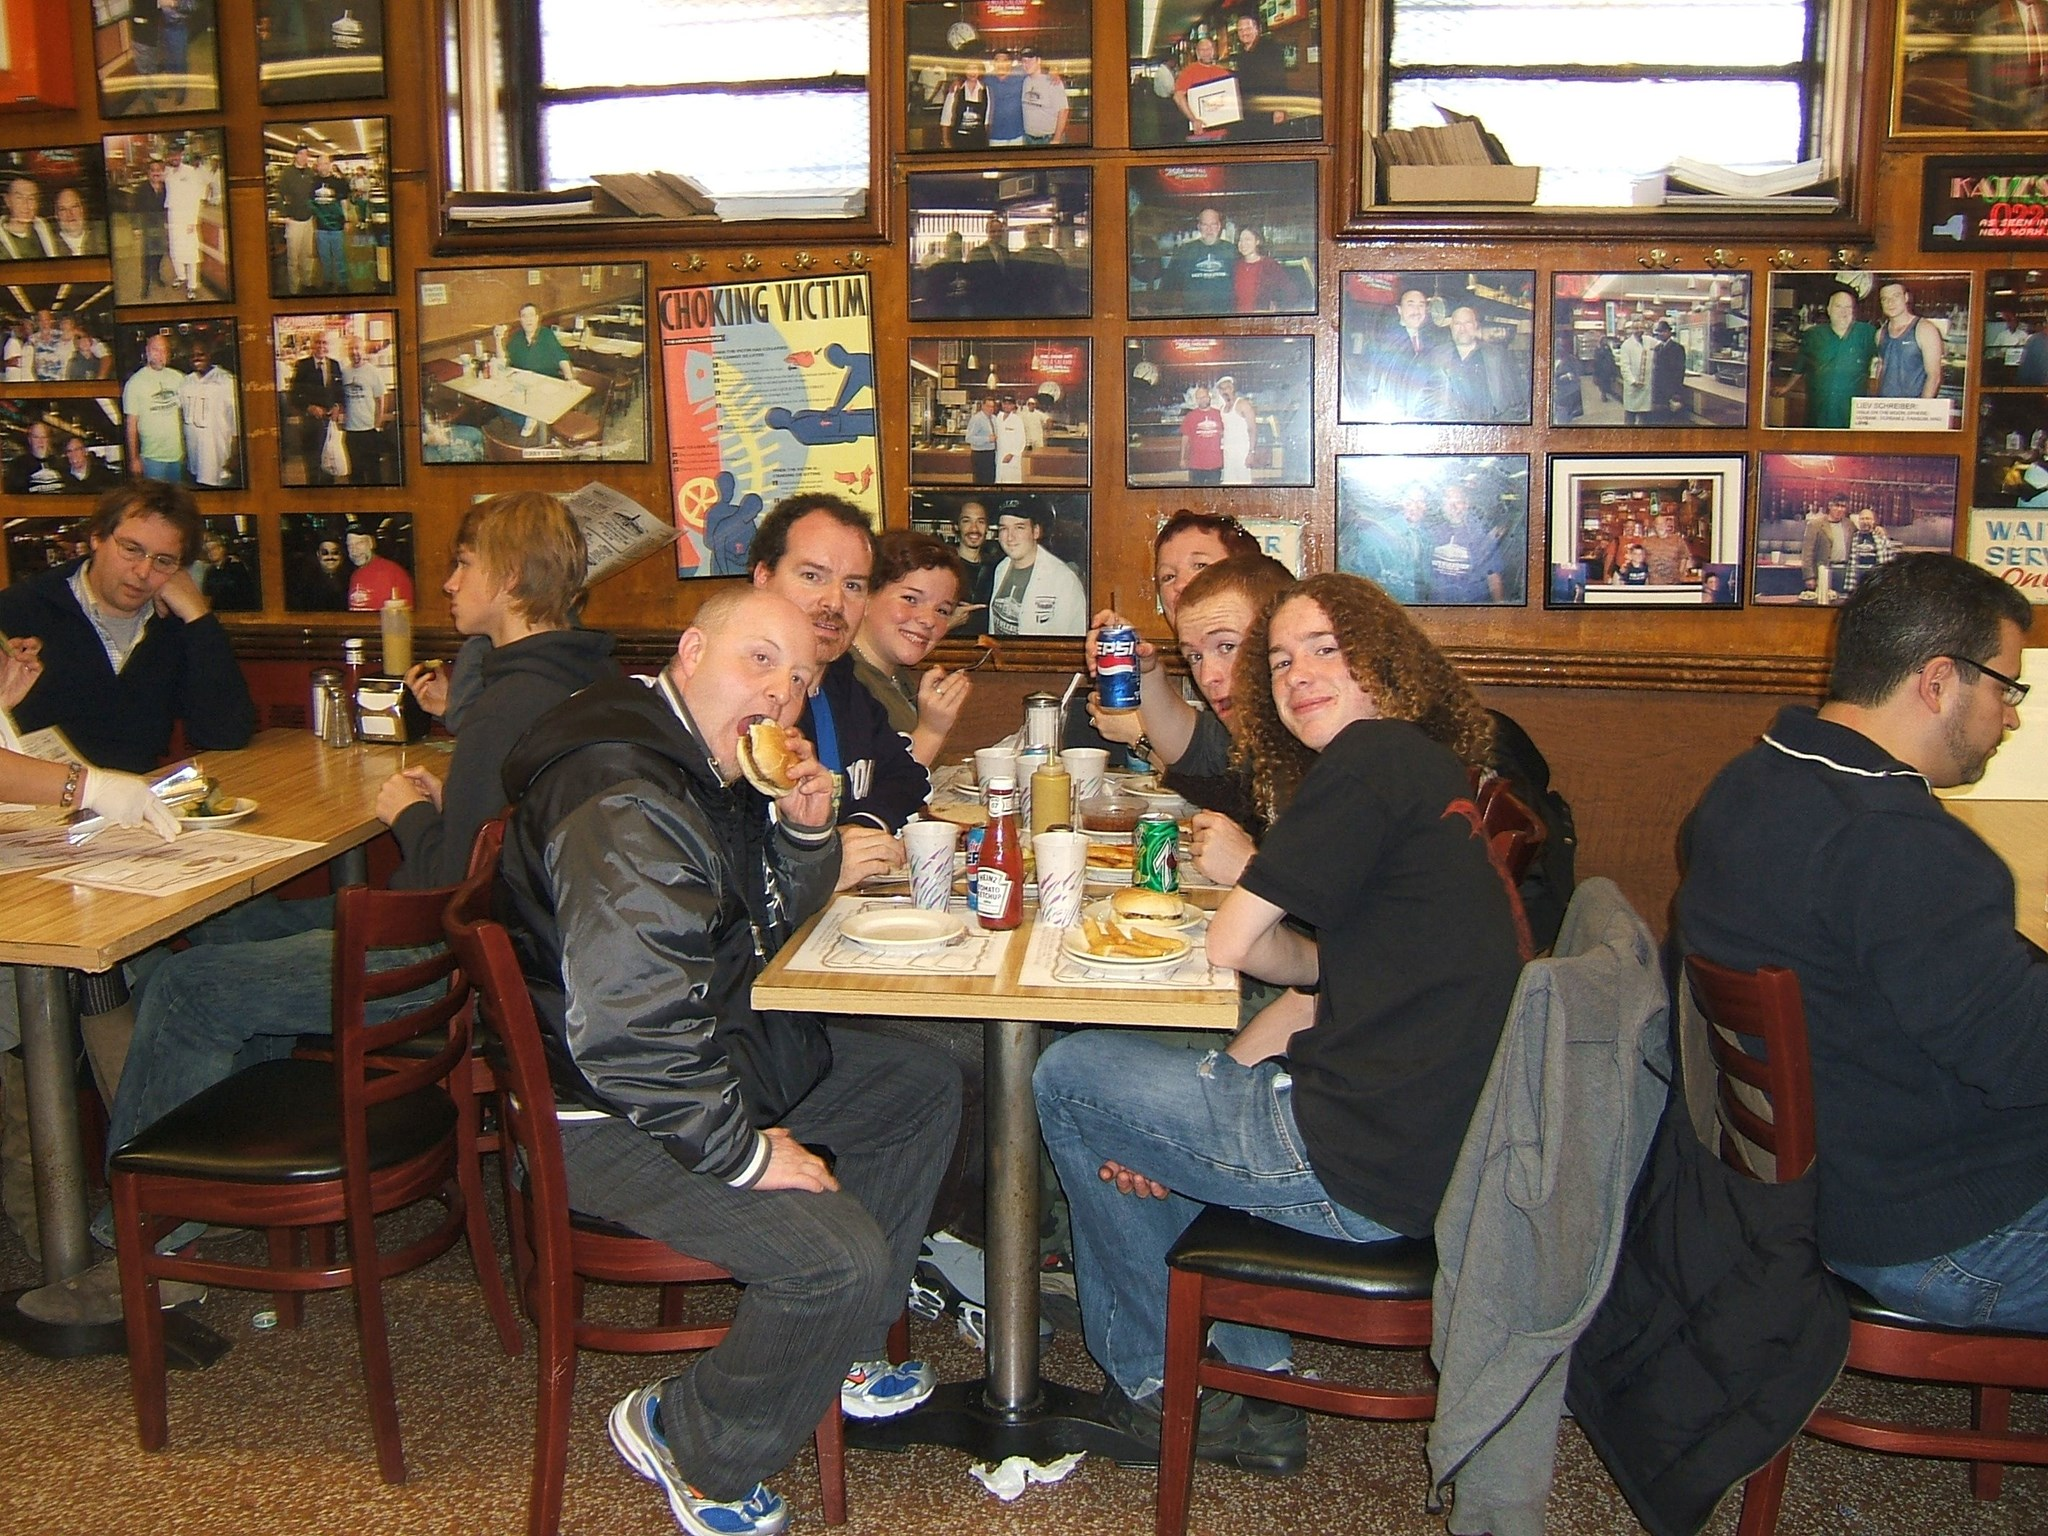 Katz's Deli   The Crowd October 2006